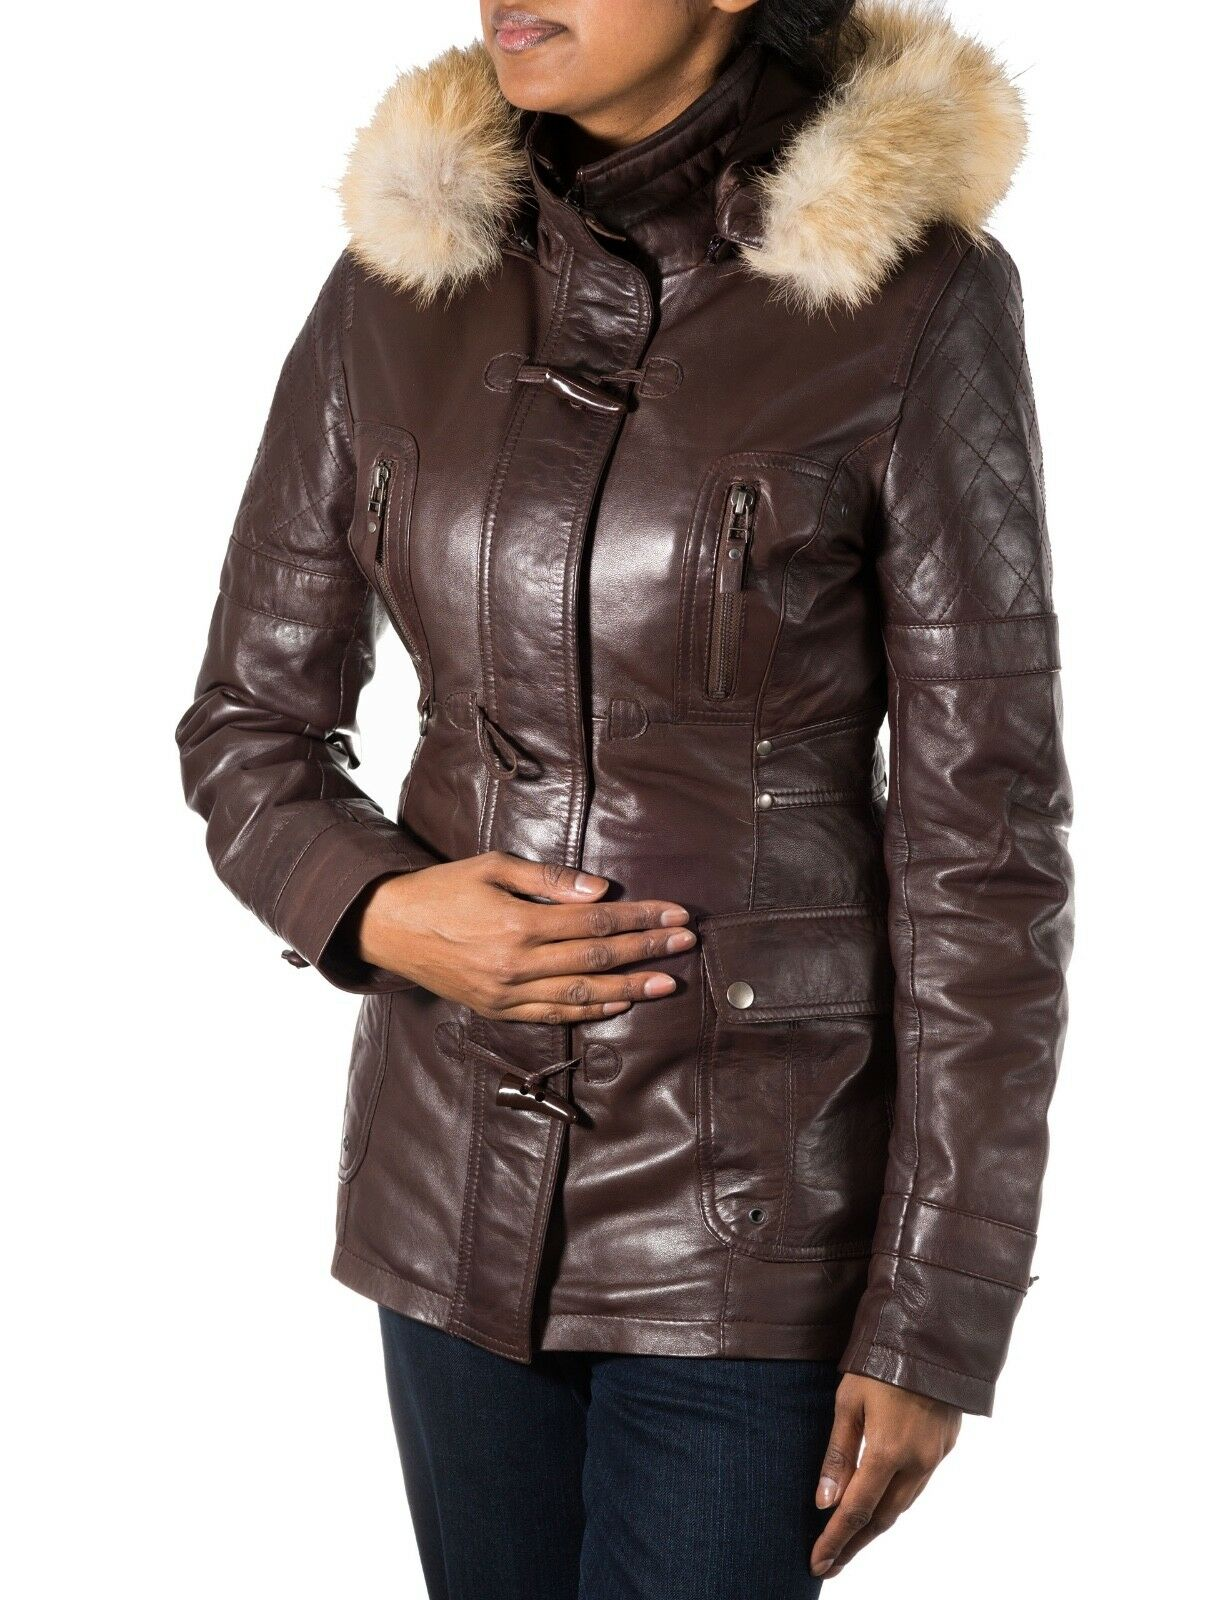 Womens Brown Sheepskin Leather Hooded Duffle Coat with Horned Toggle Buttons